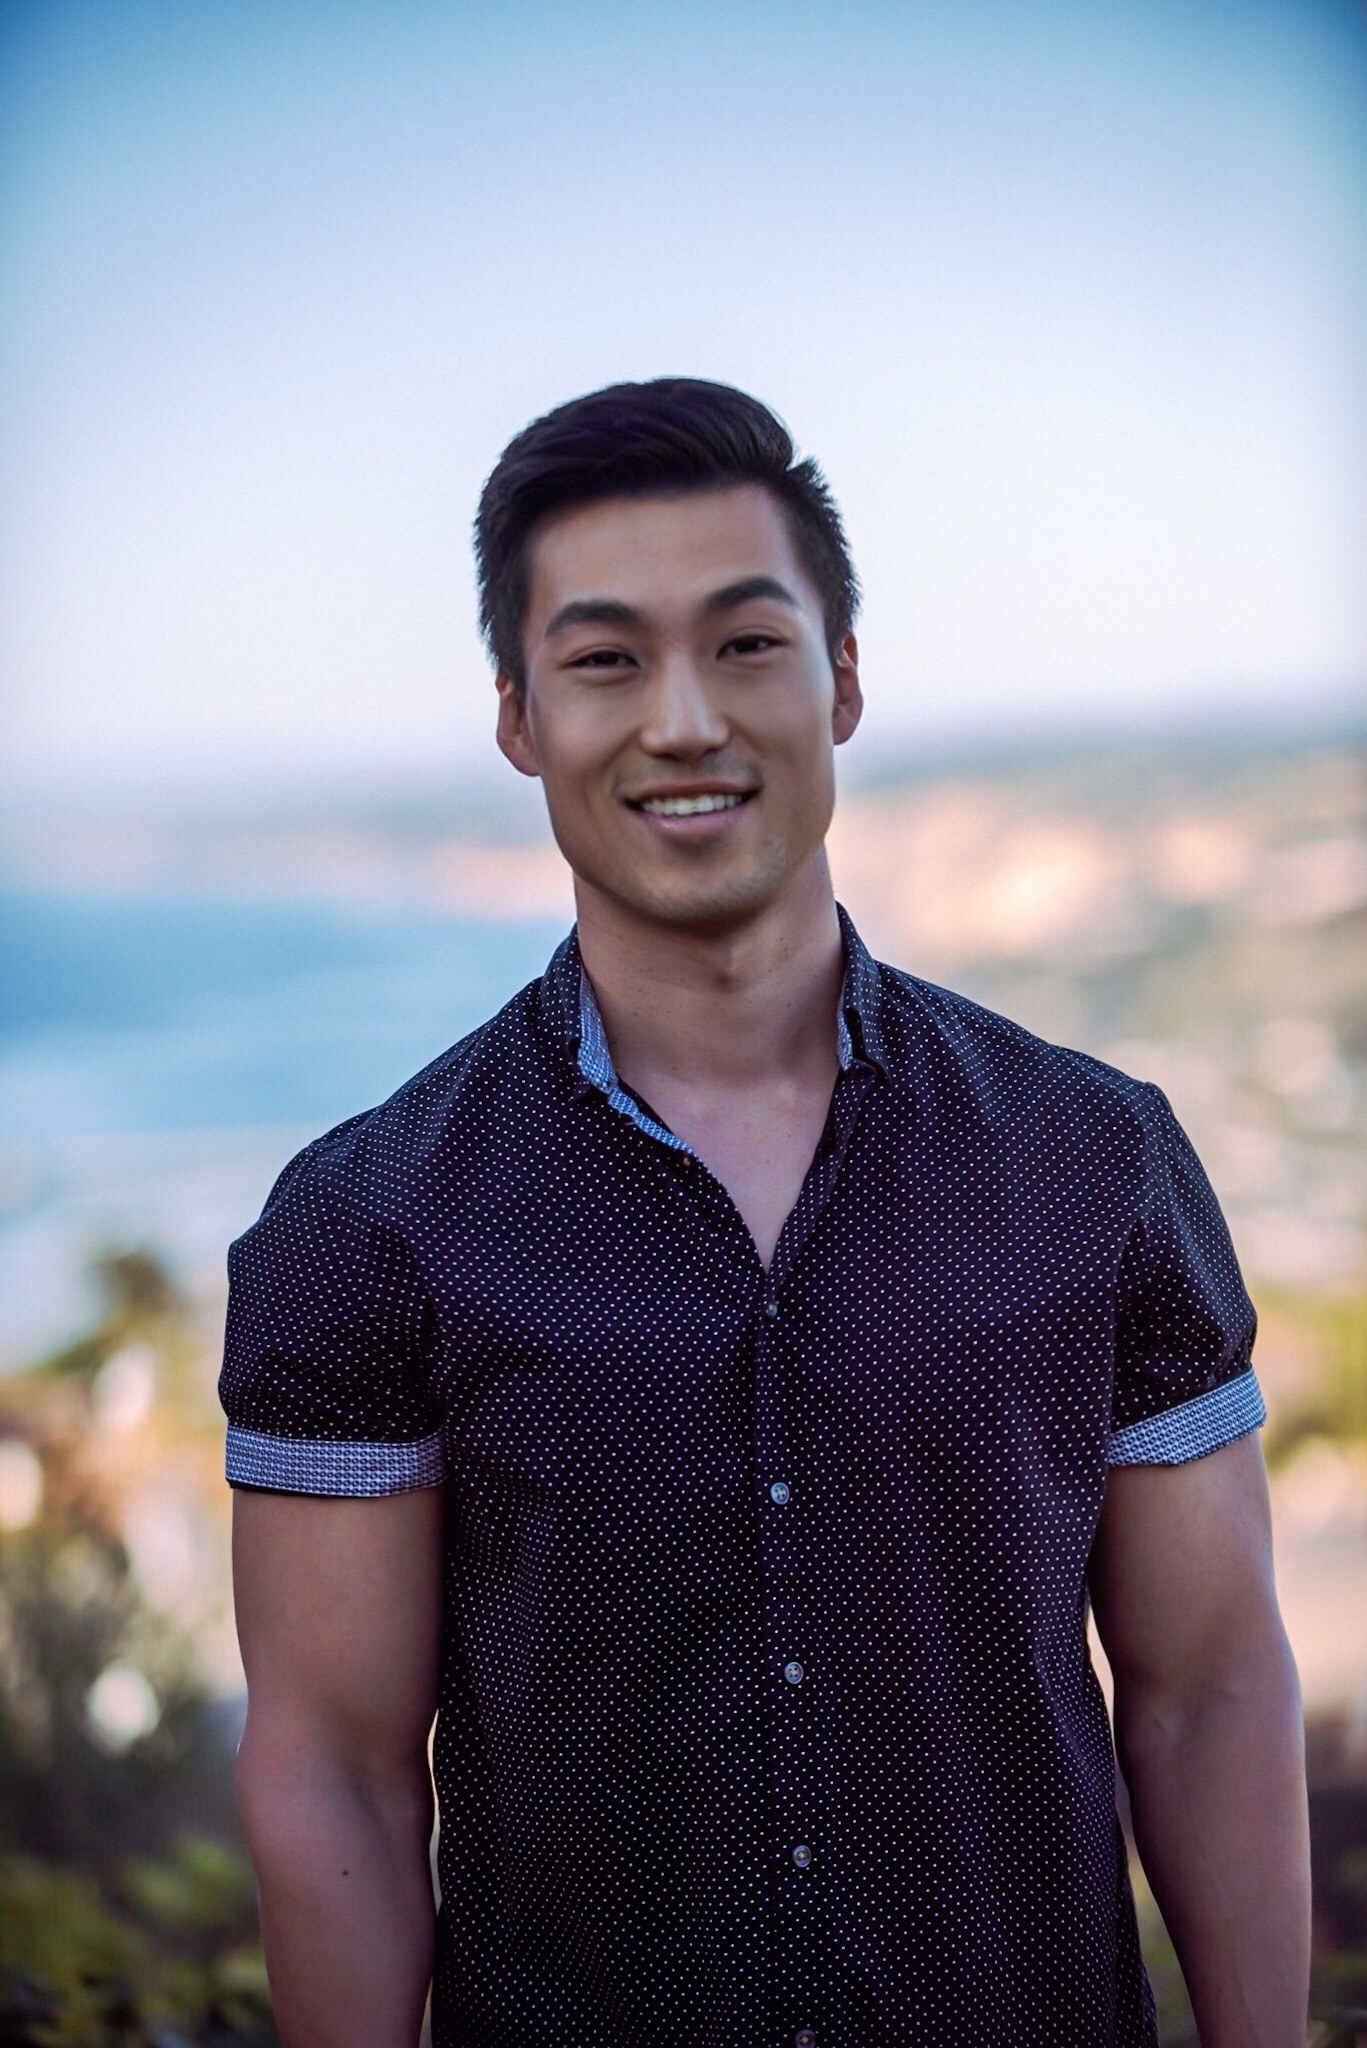 Bao smiling in a short-sleeved shirt and the beach behind him